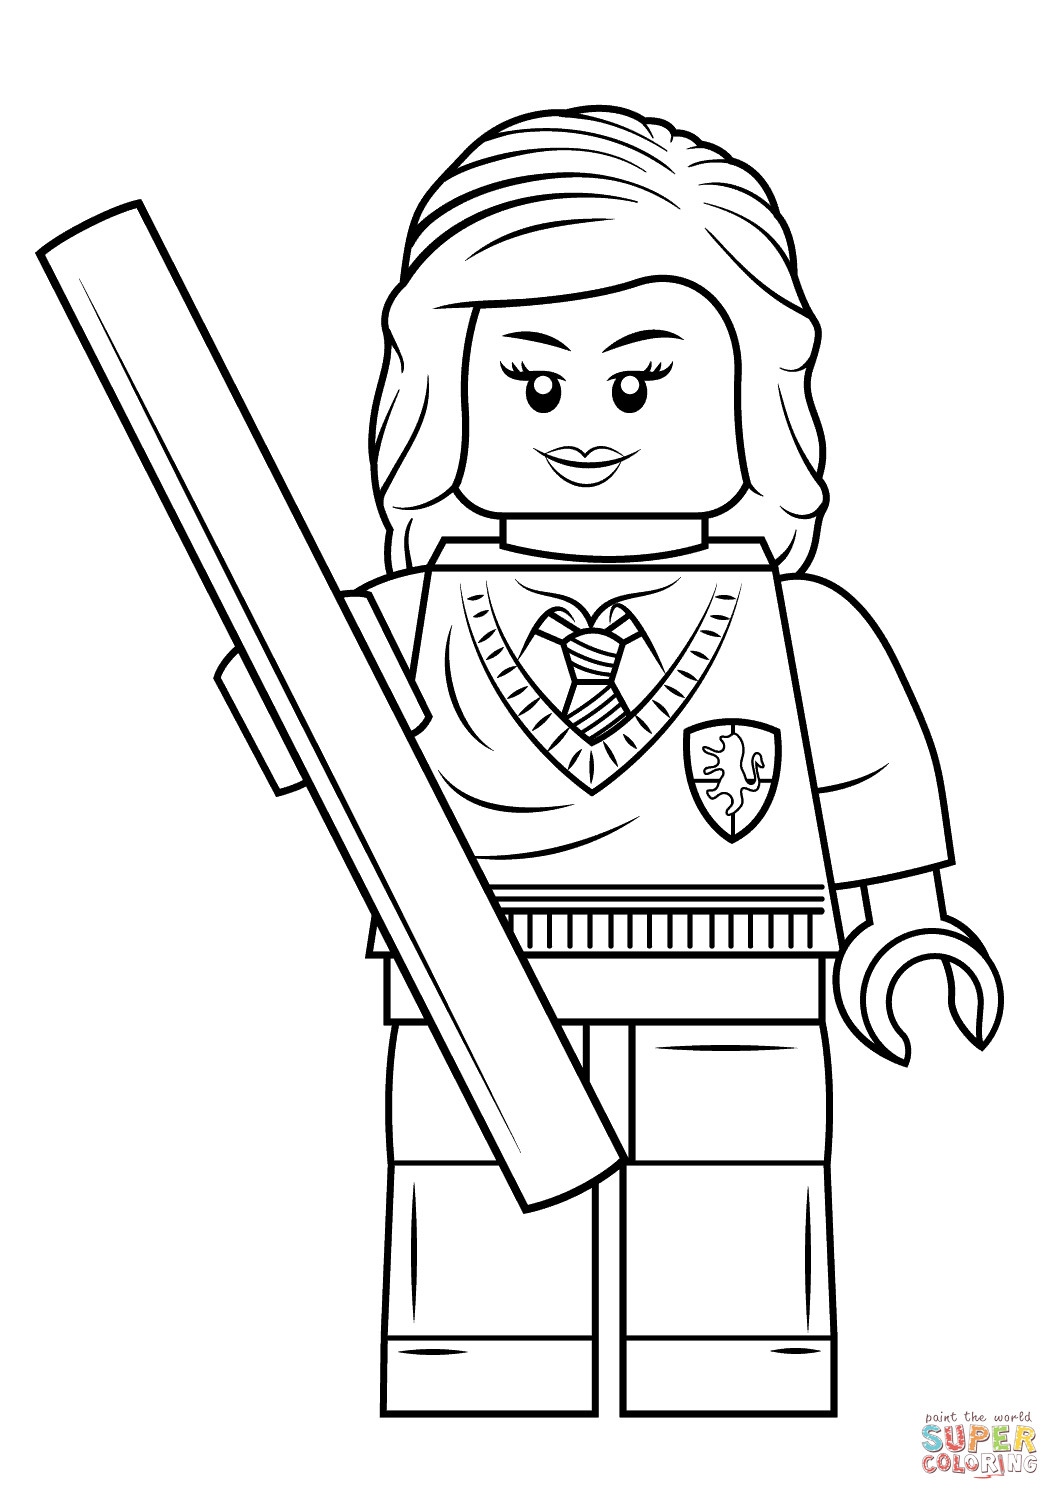 Hermione Granger Coloring Pages  Lego Hermione Granger coloring page